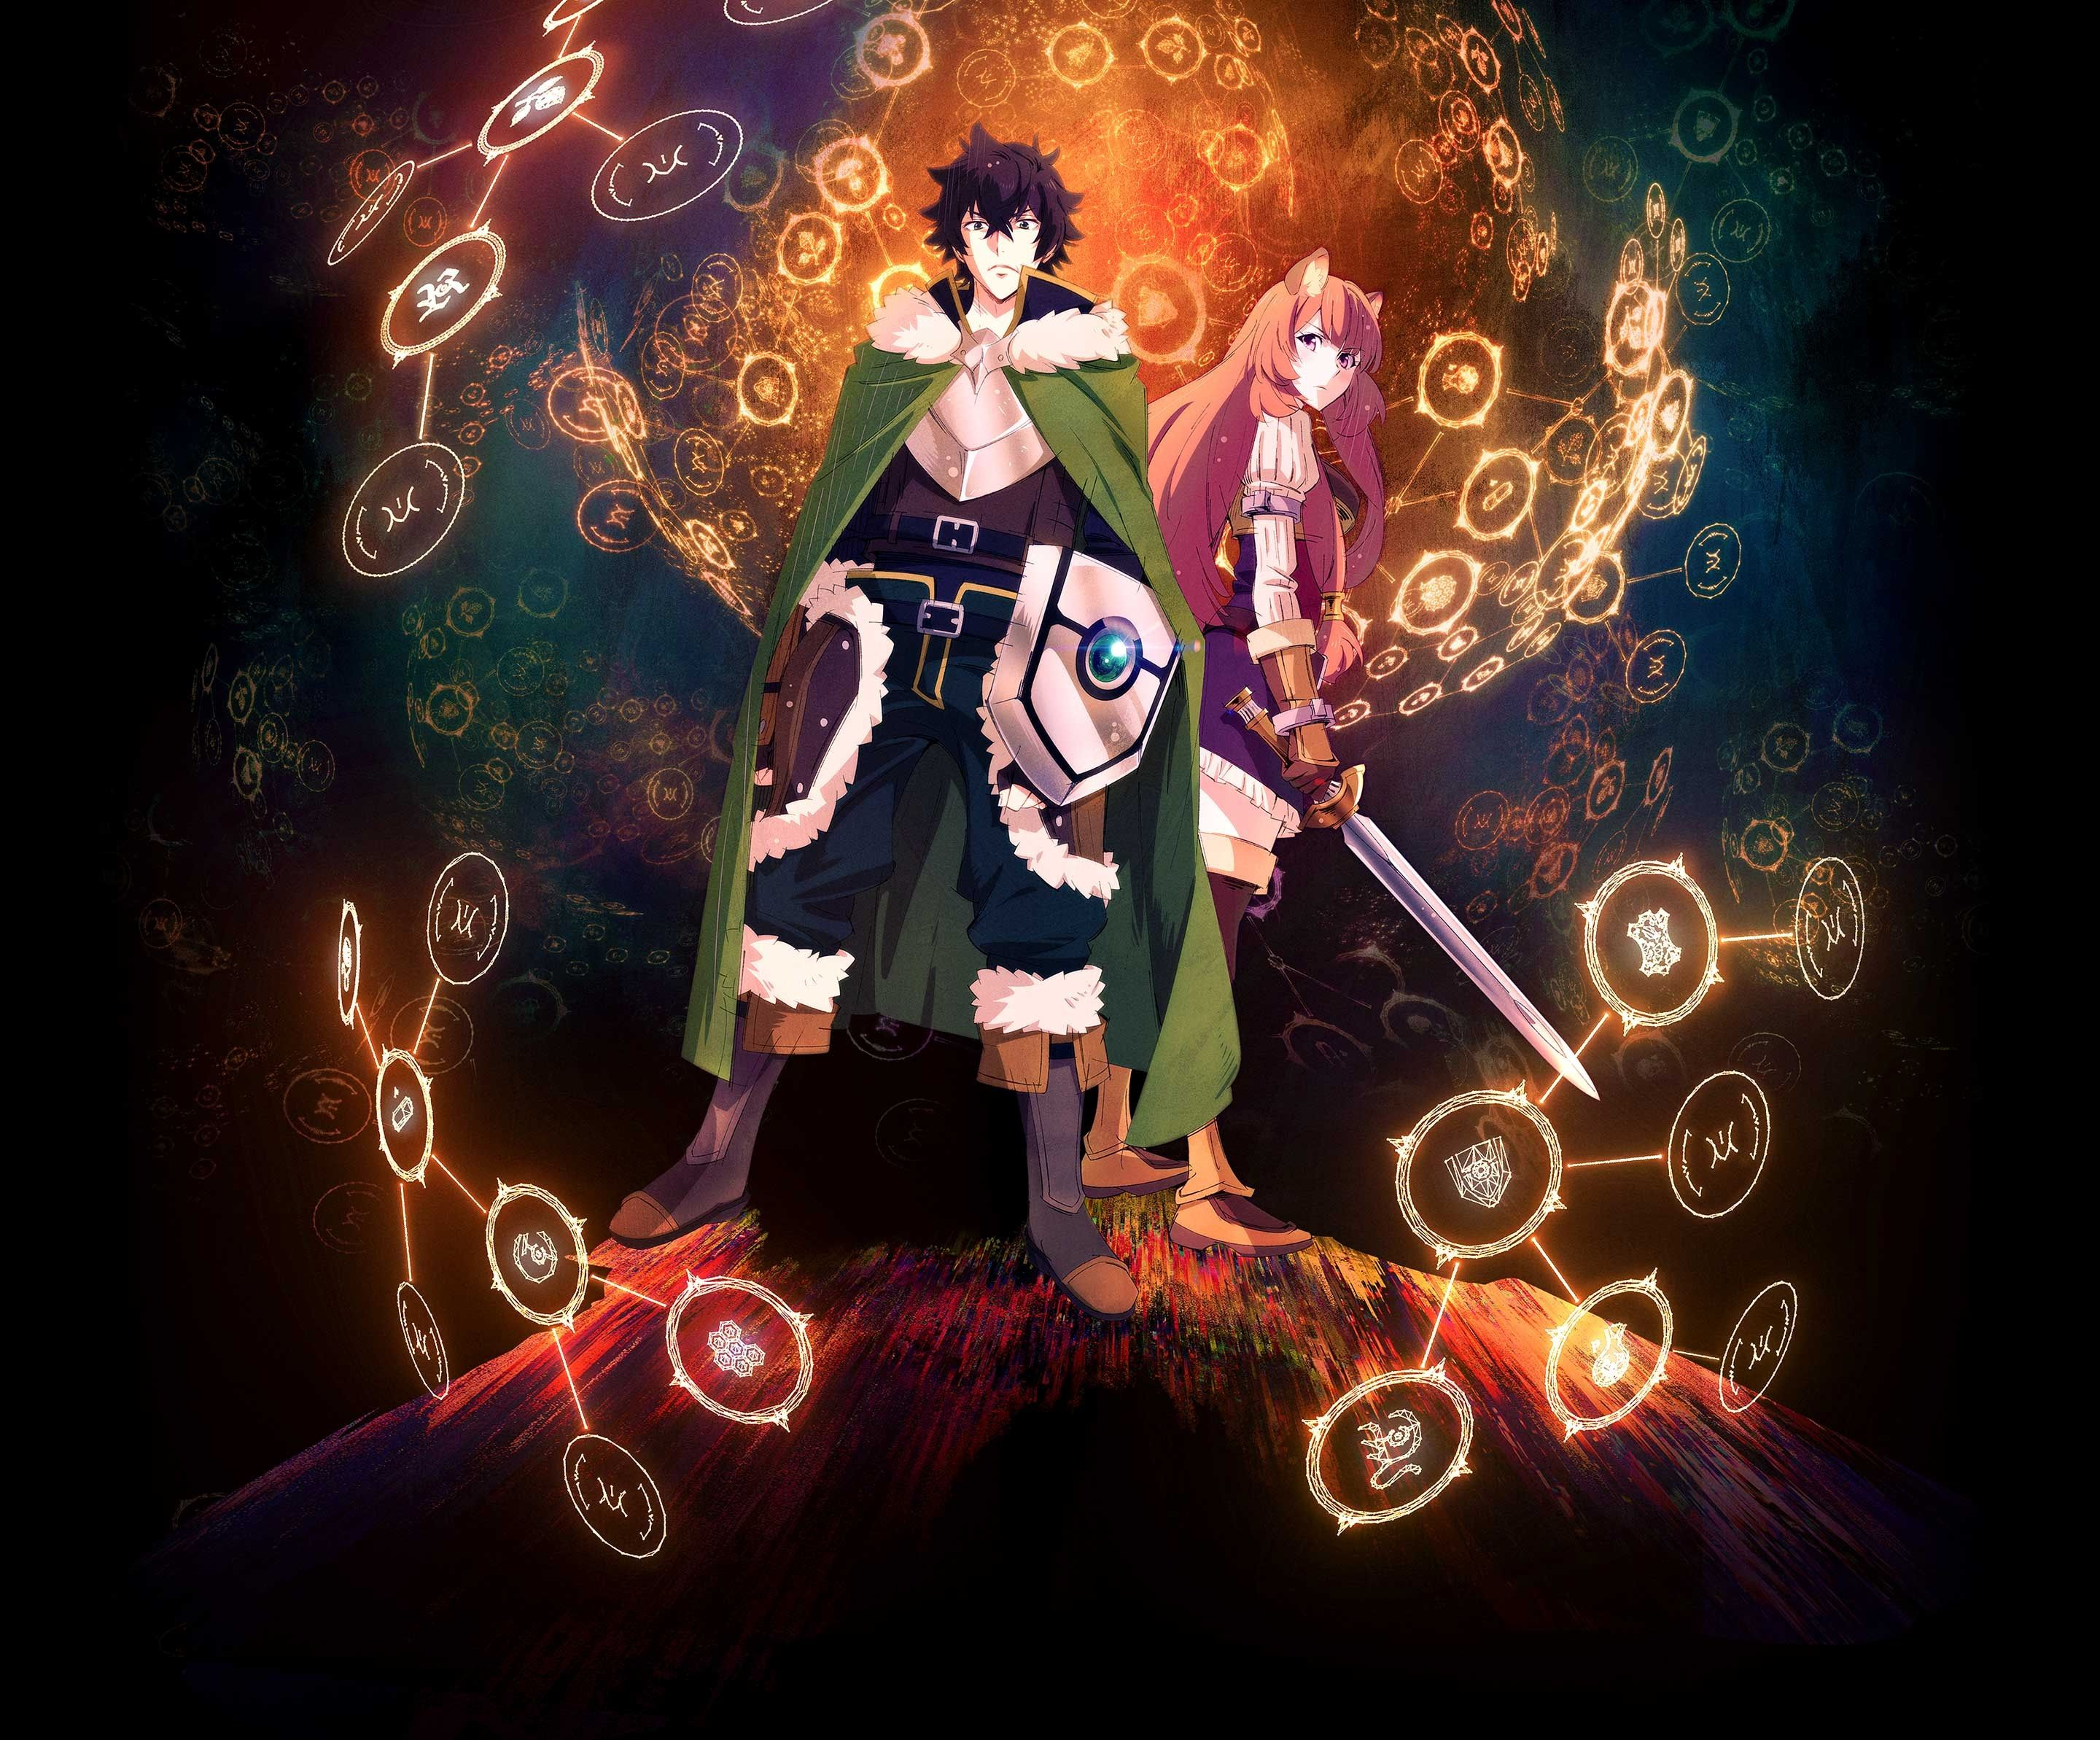 The Shield Hero Is Prepared For Battle For High Quality Anime